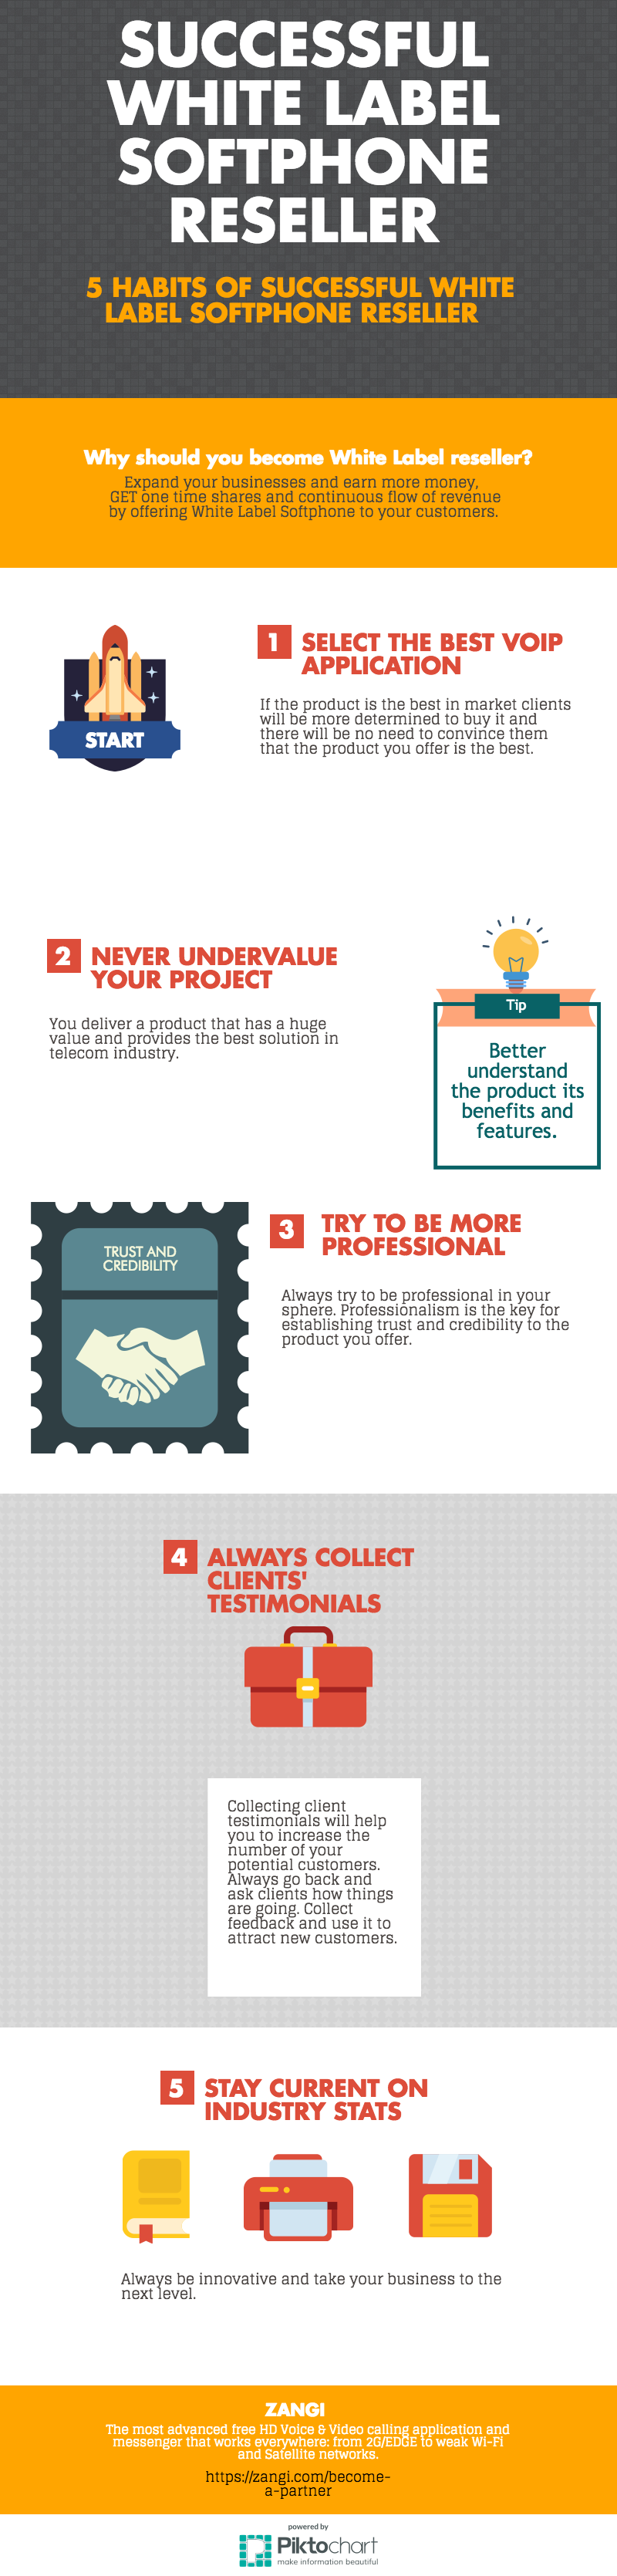 5 Habits of Successful White Label Softphone Reseller